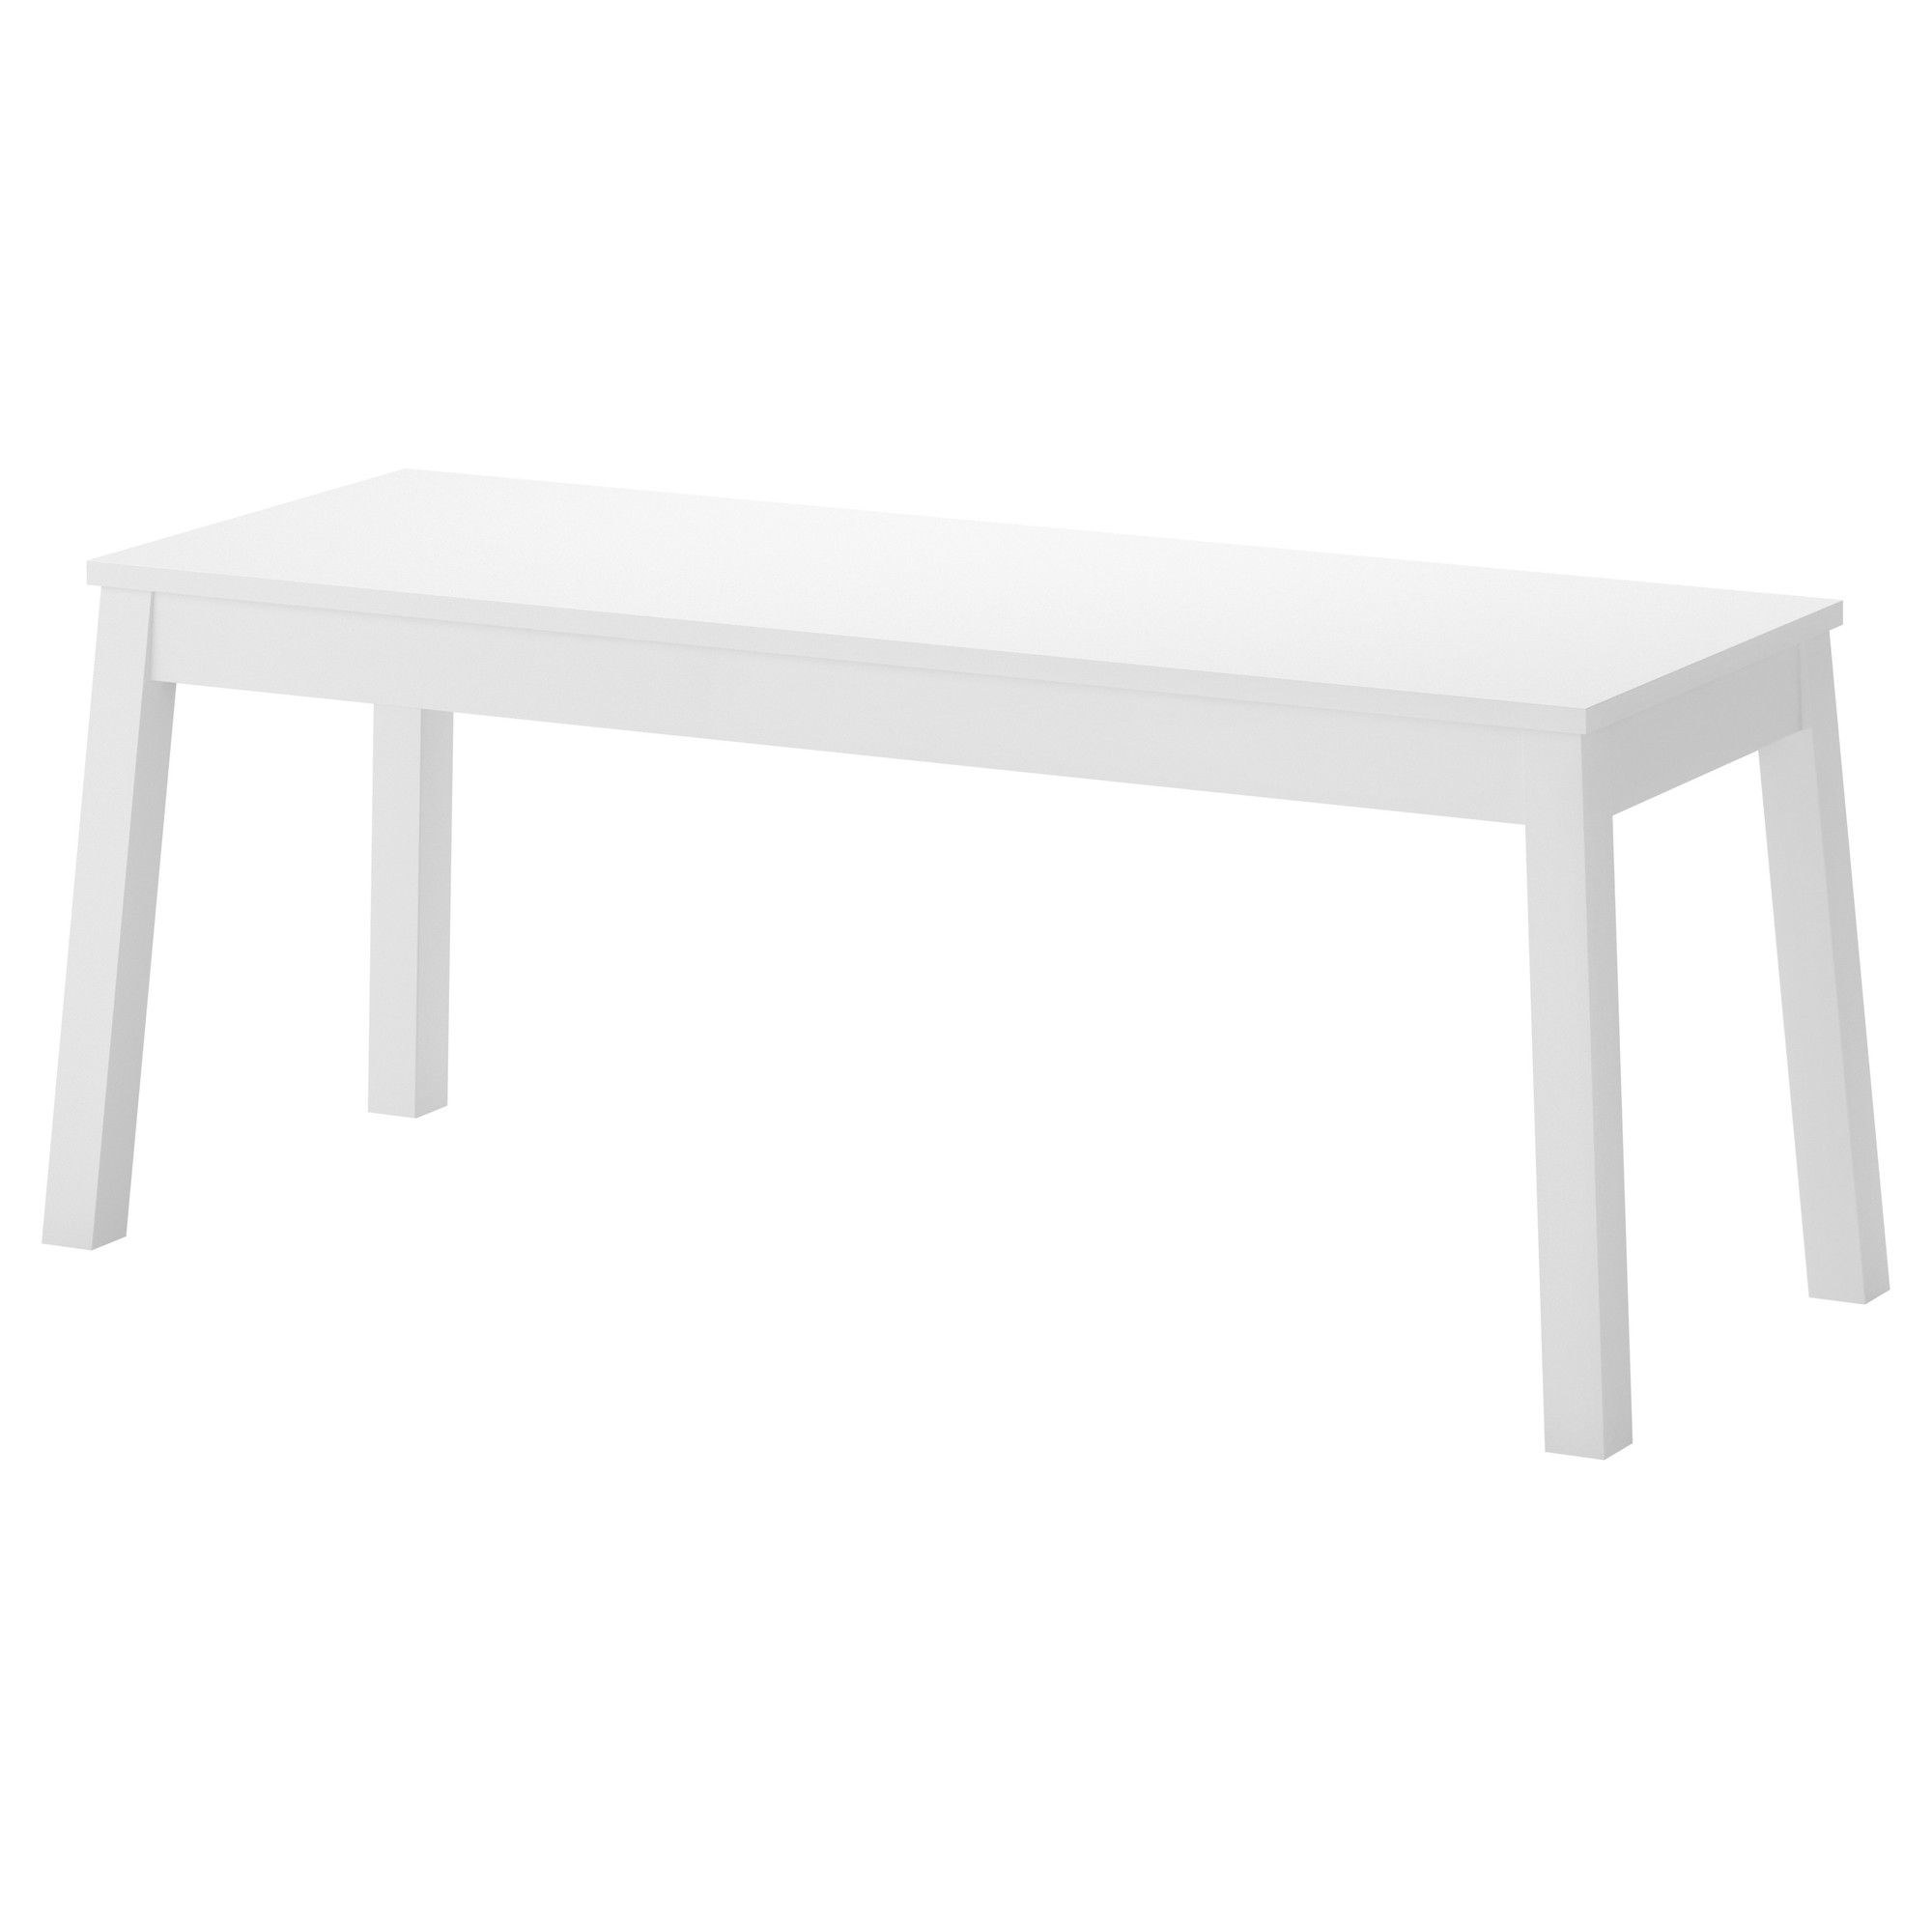 Small Bedroom Benches